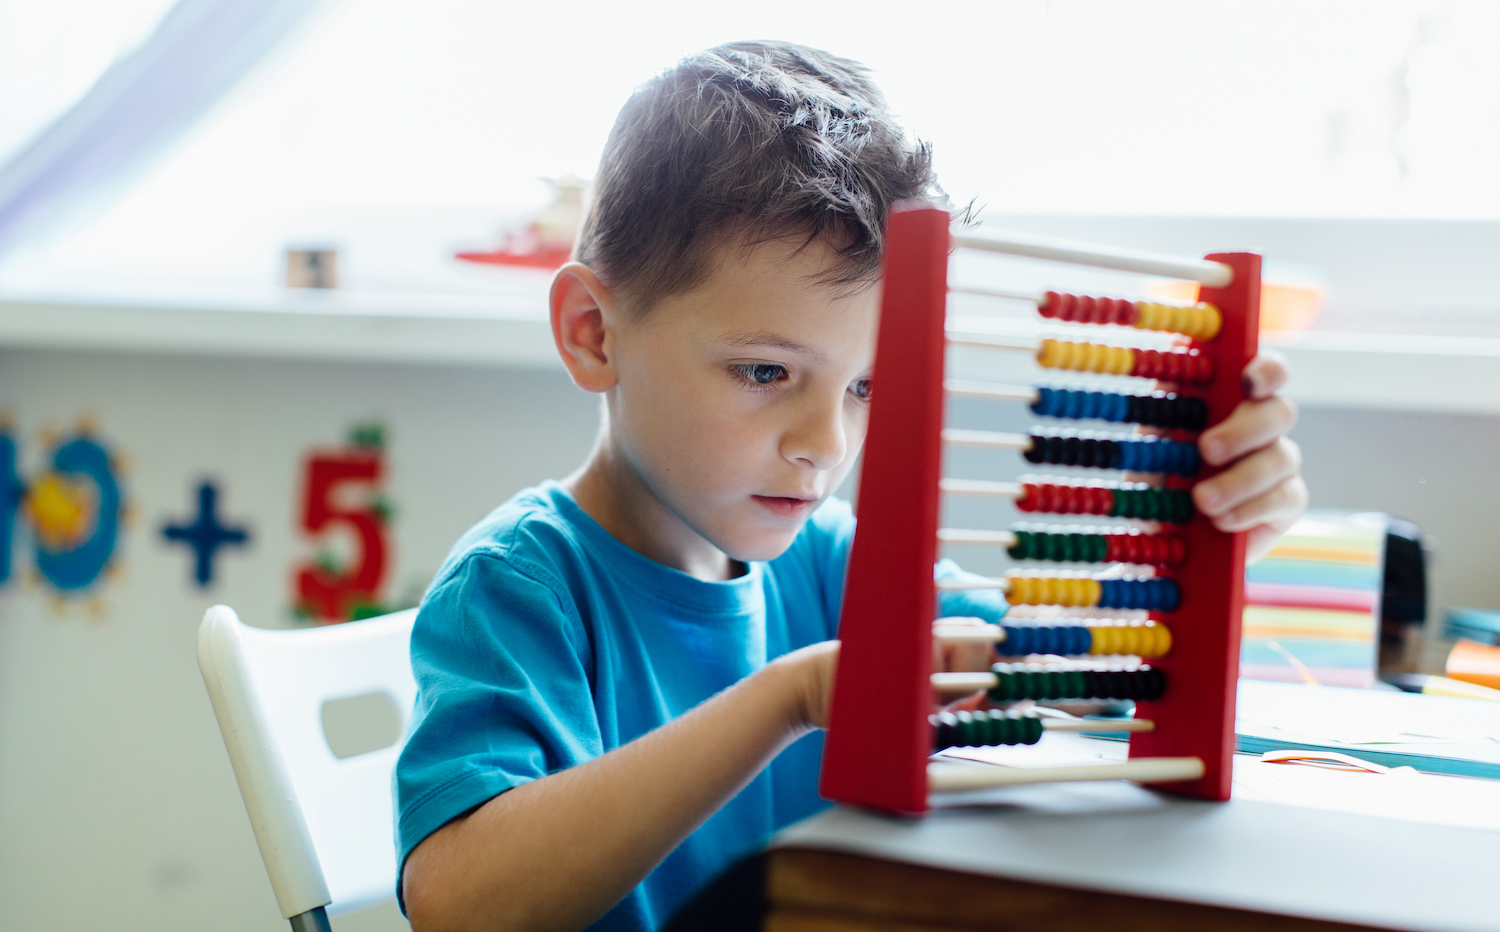 5 fun math games to get your kid excited about back-to-school